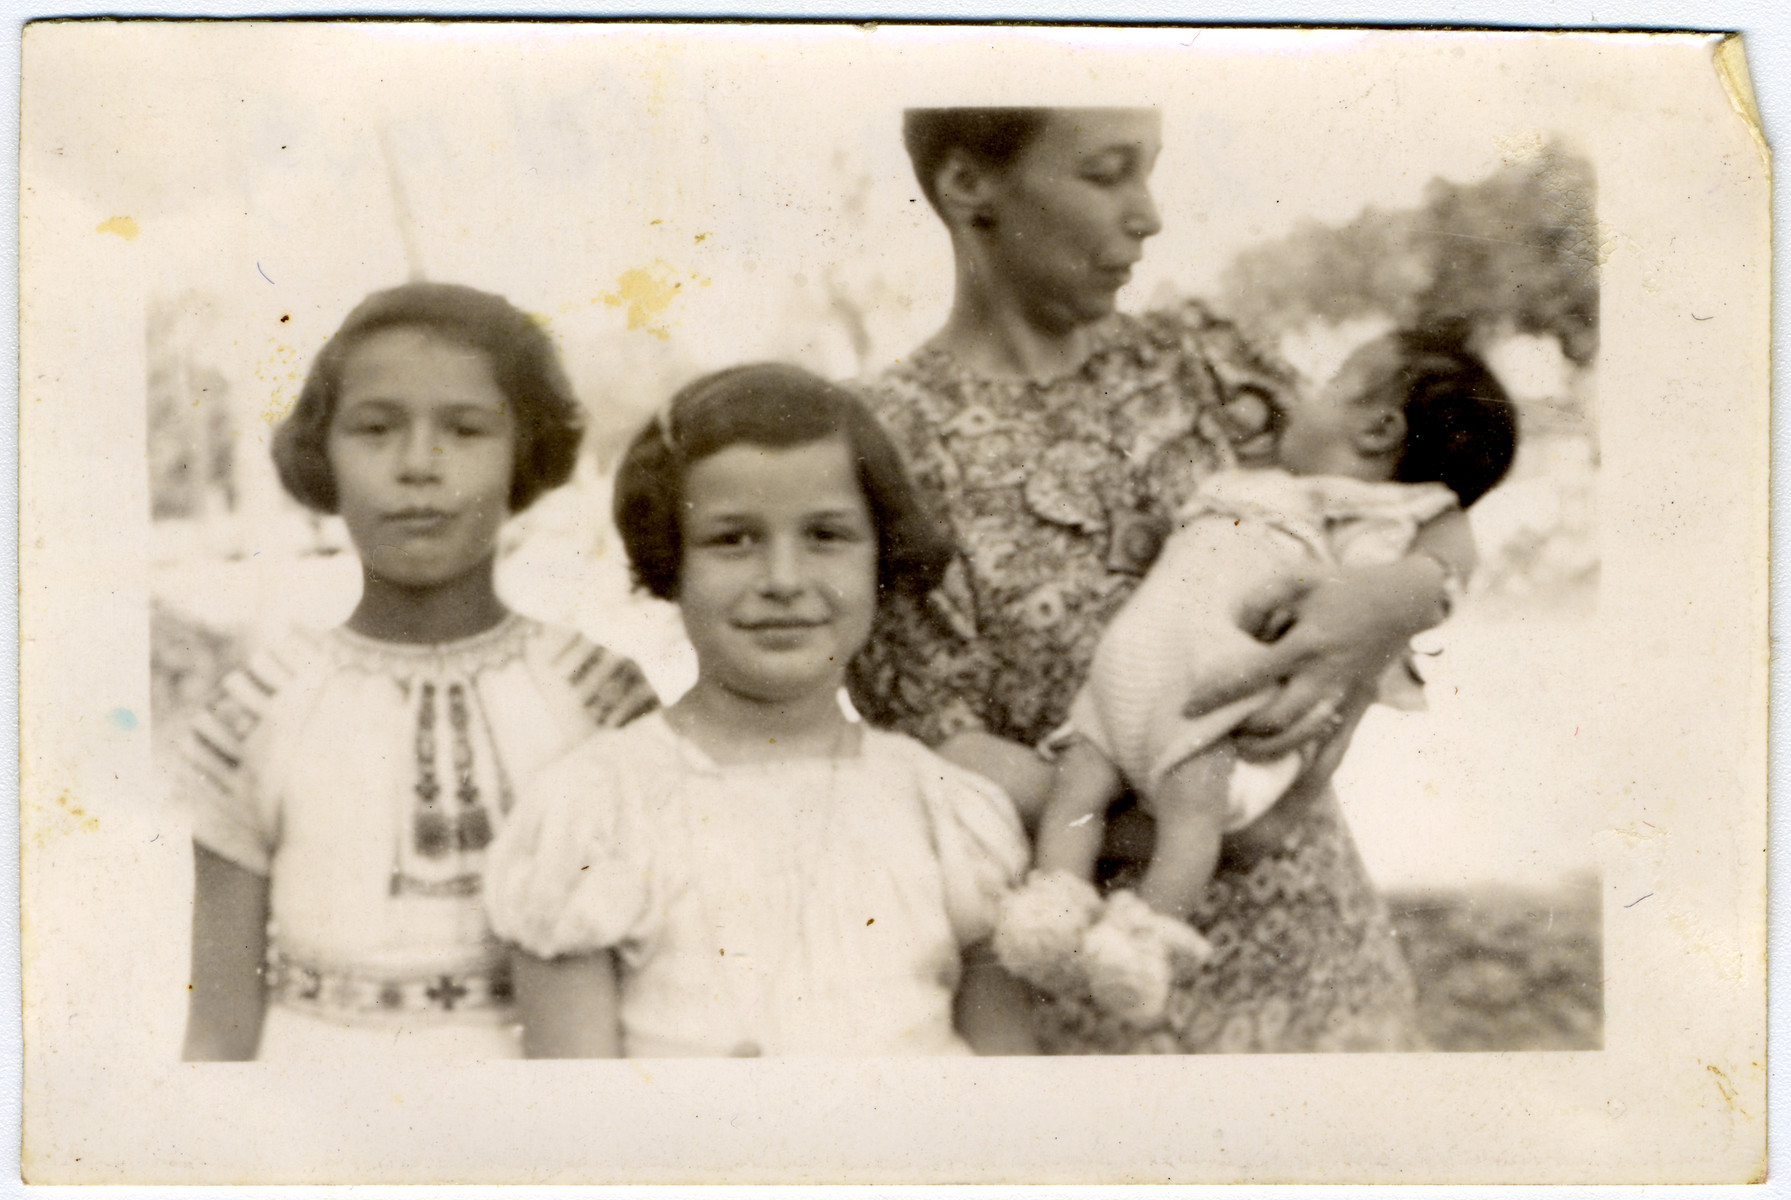 Portrait of a Jewish family in hiding.  Pictured left to right are Manuela and Jacqueline Mendels and their mother Ellen, holding their newborn brother Franklin.